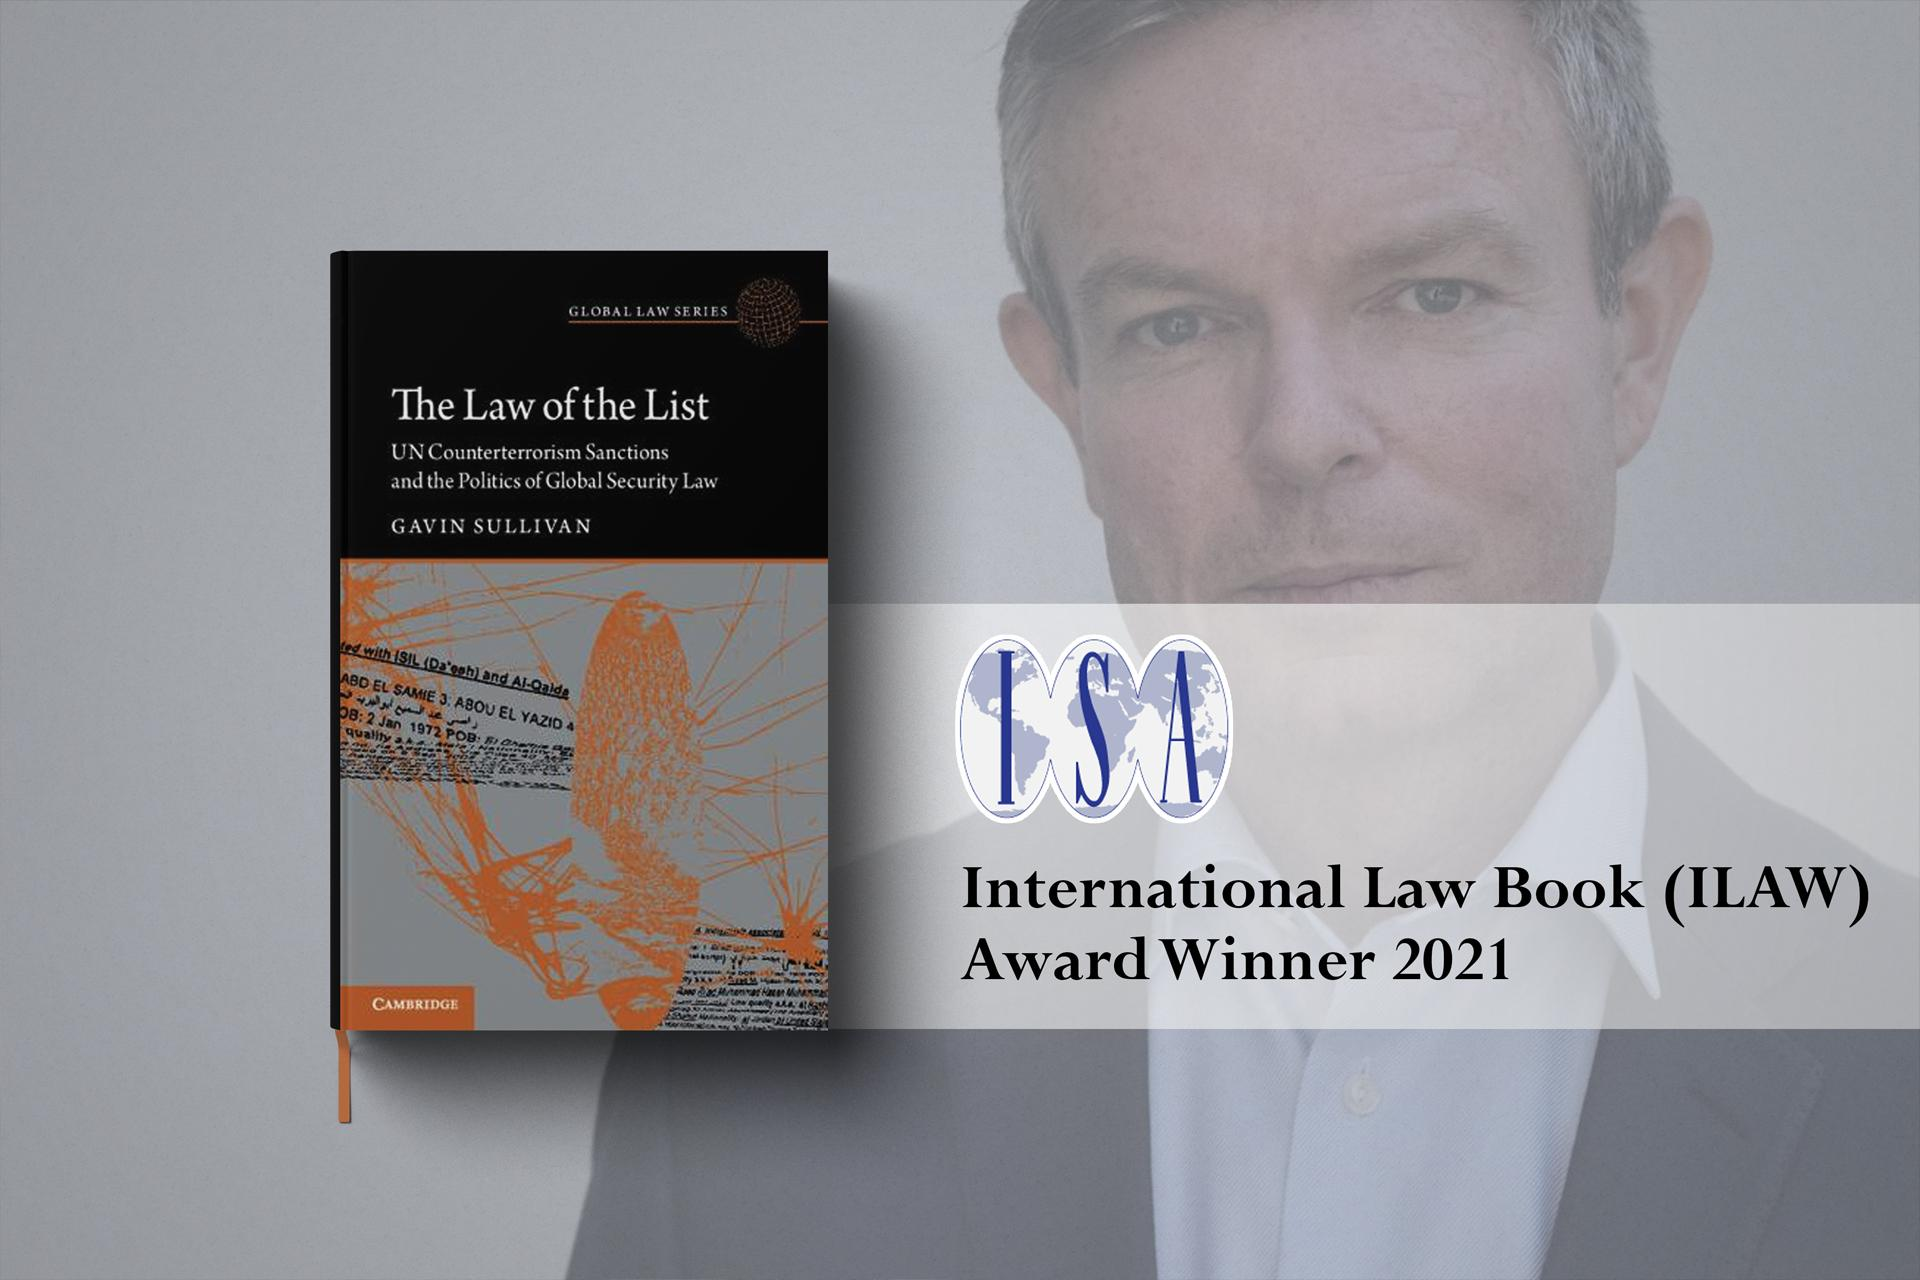 Dr Gavin Sullivan receives ISA ILAW 2021 Book Award